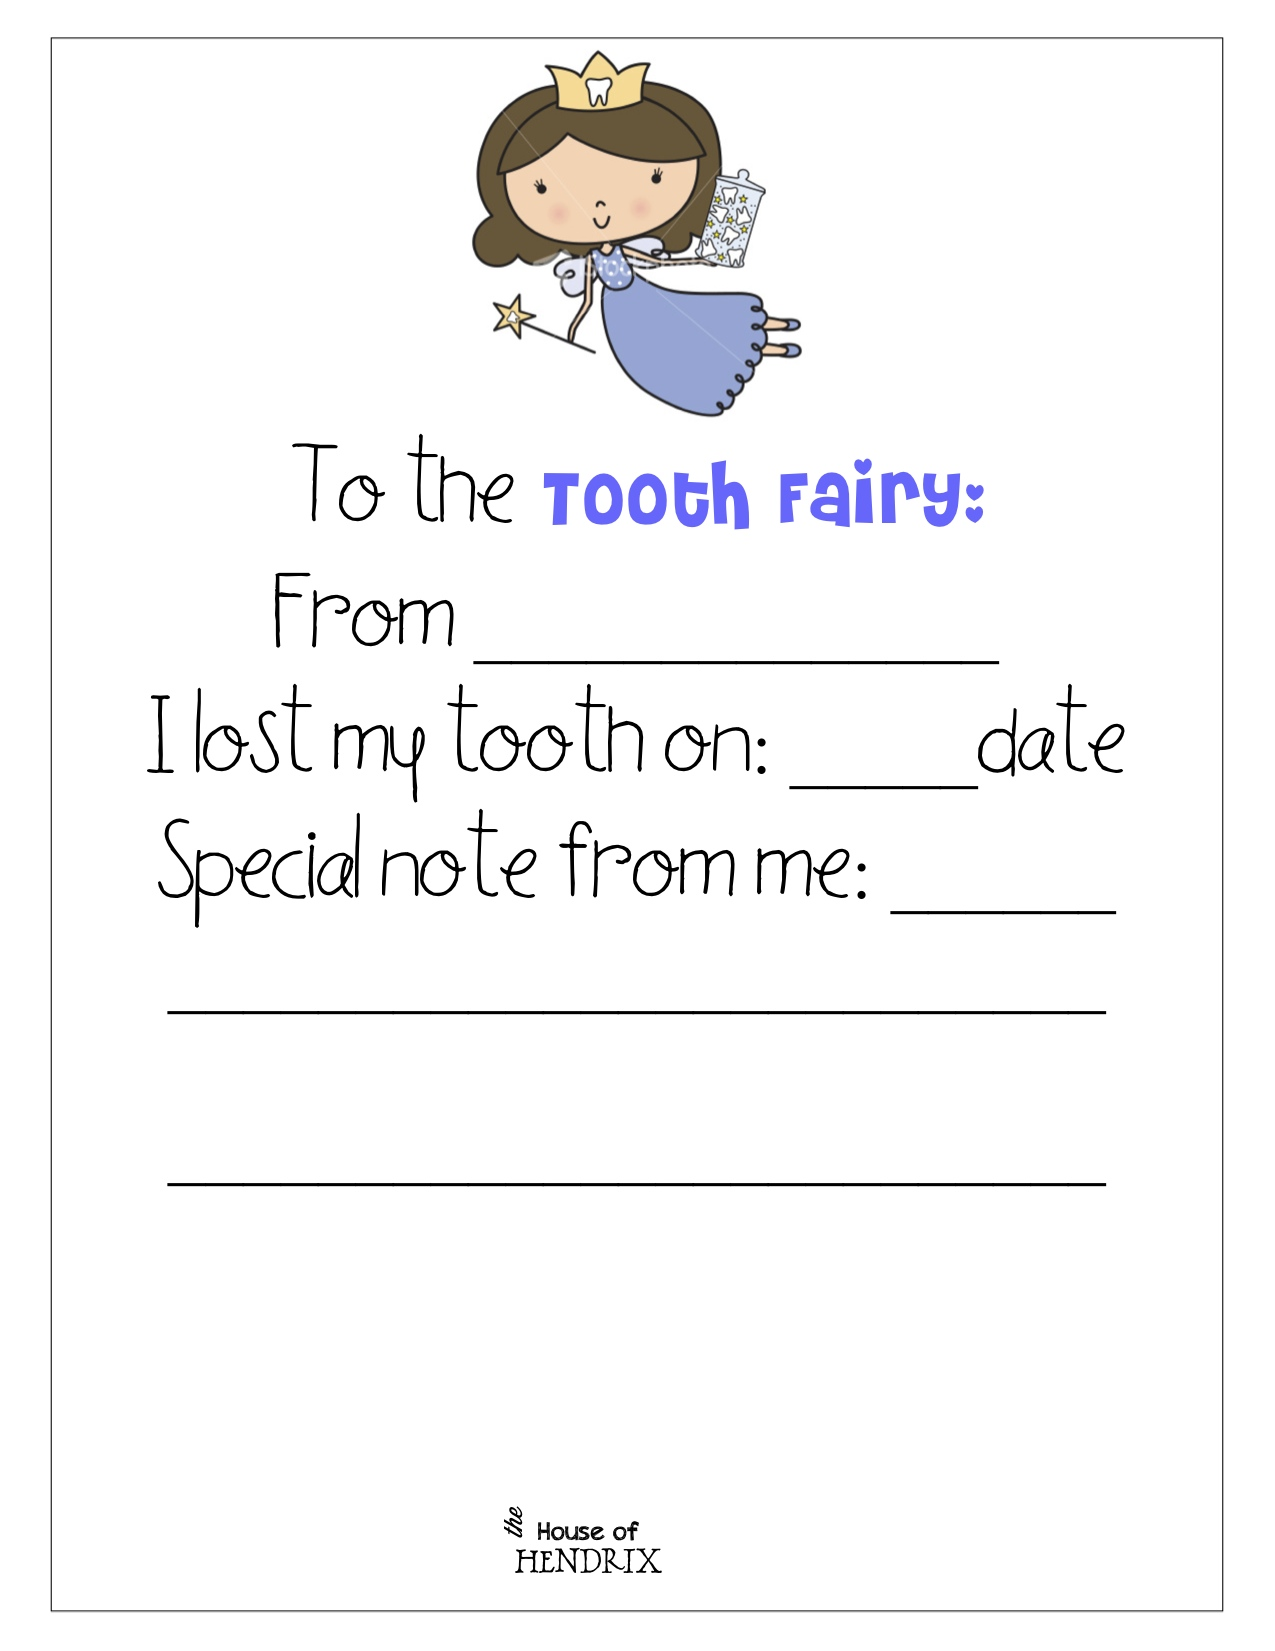 picture relating to Tooth Fairy Stationary titled Teeth Fairy -printables - The Household of Hendrix